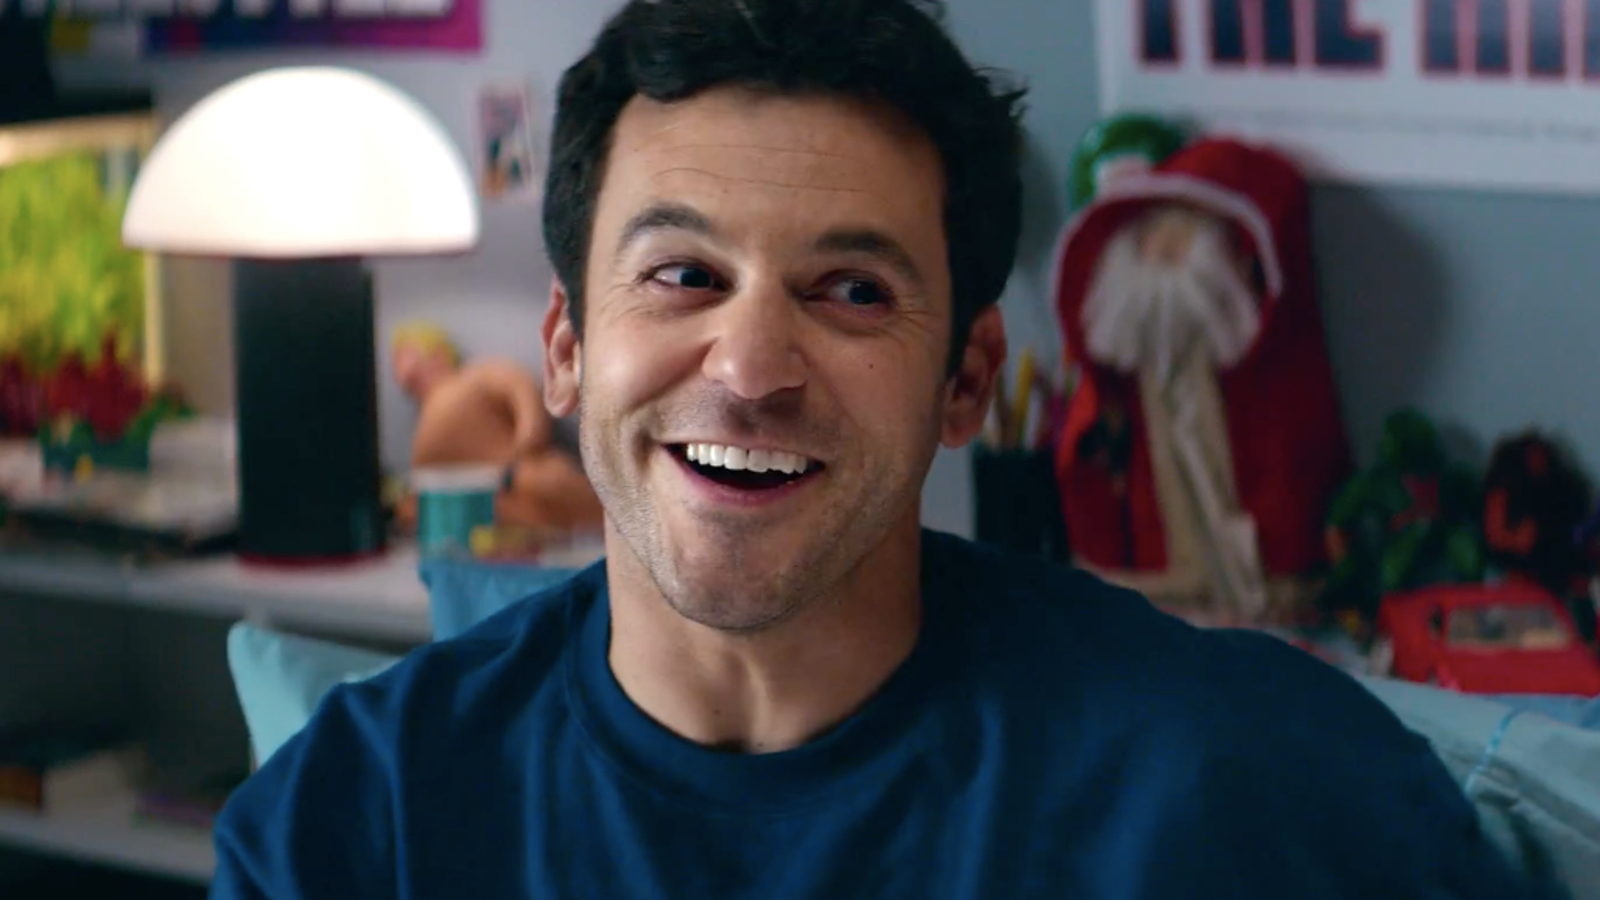 The FirstOnceUpon a Deadpool Trailer Stars Fred Savage's Sick Burns